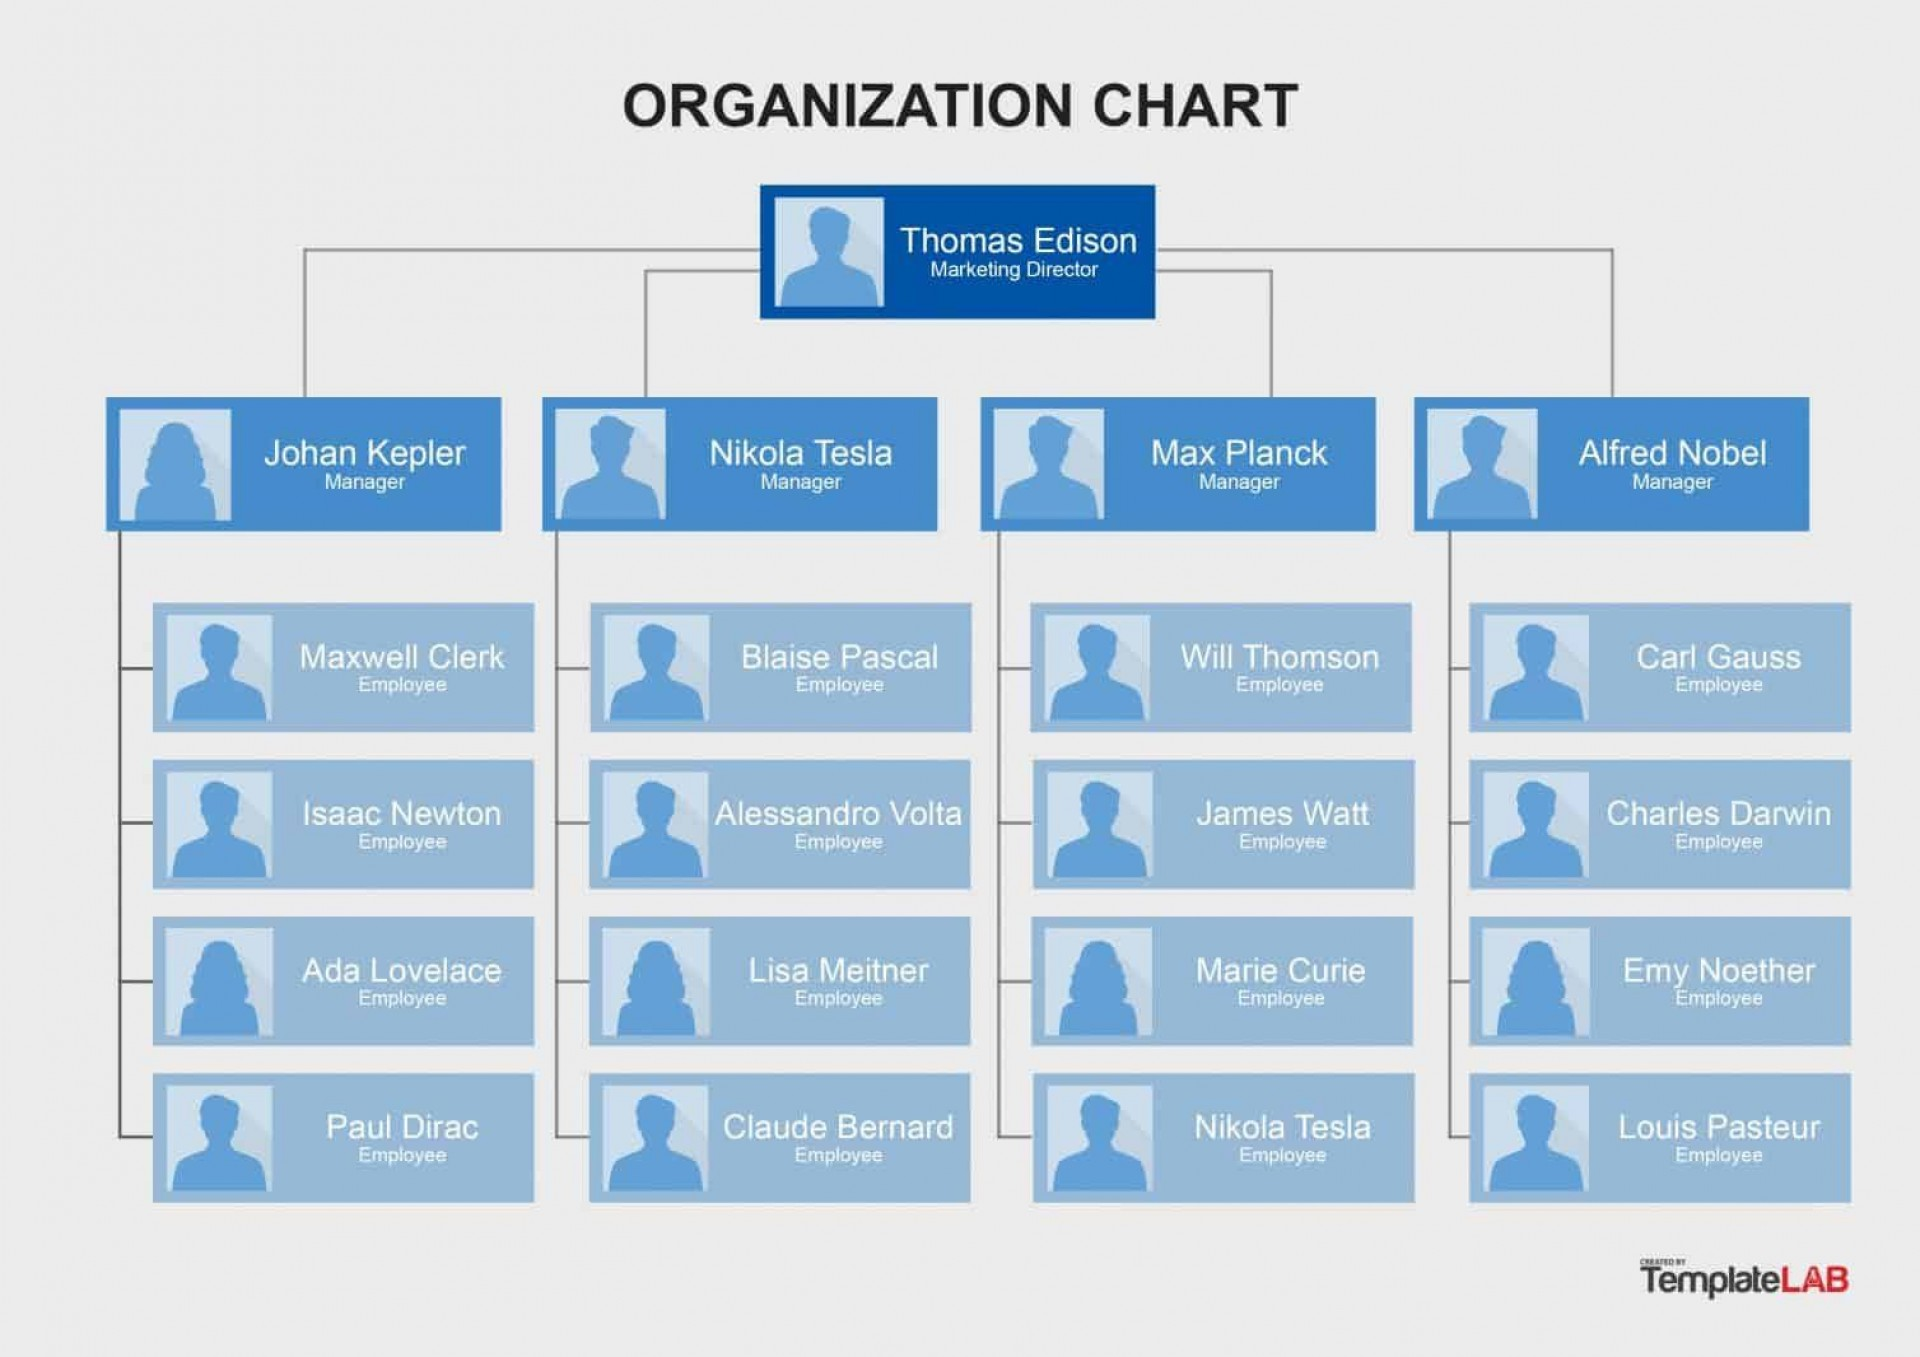 008 Marvelou Organization Chart Template Excel 2010 Example  Org Organizational1920